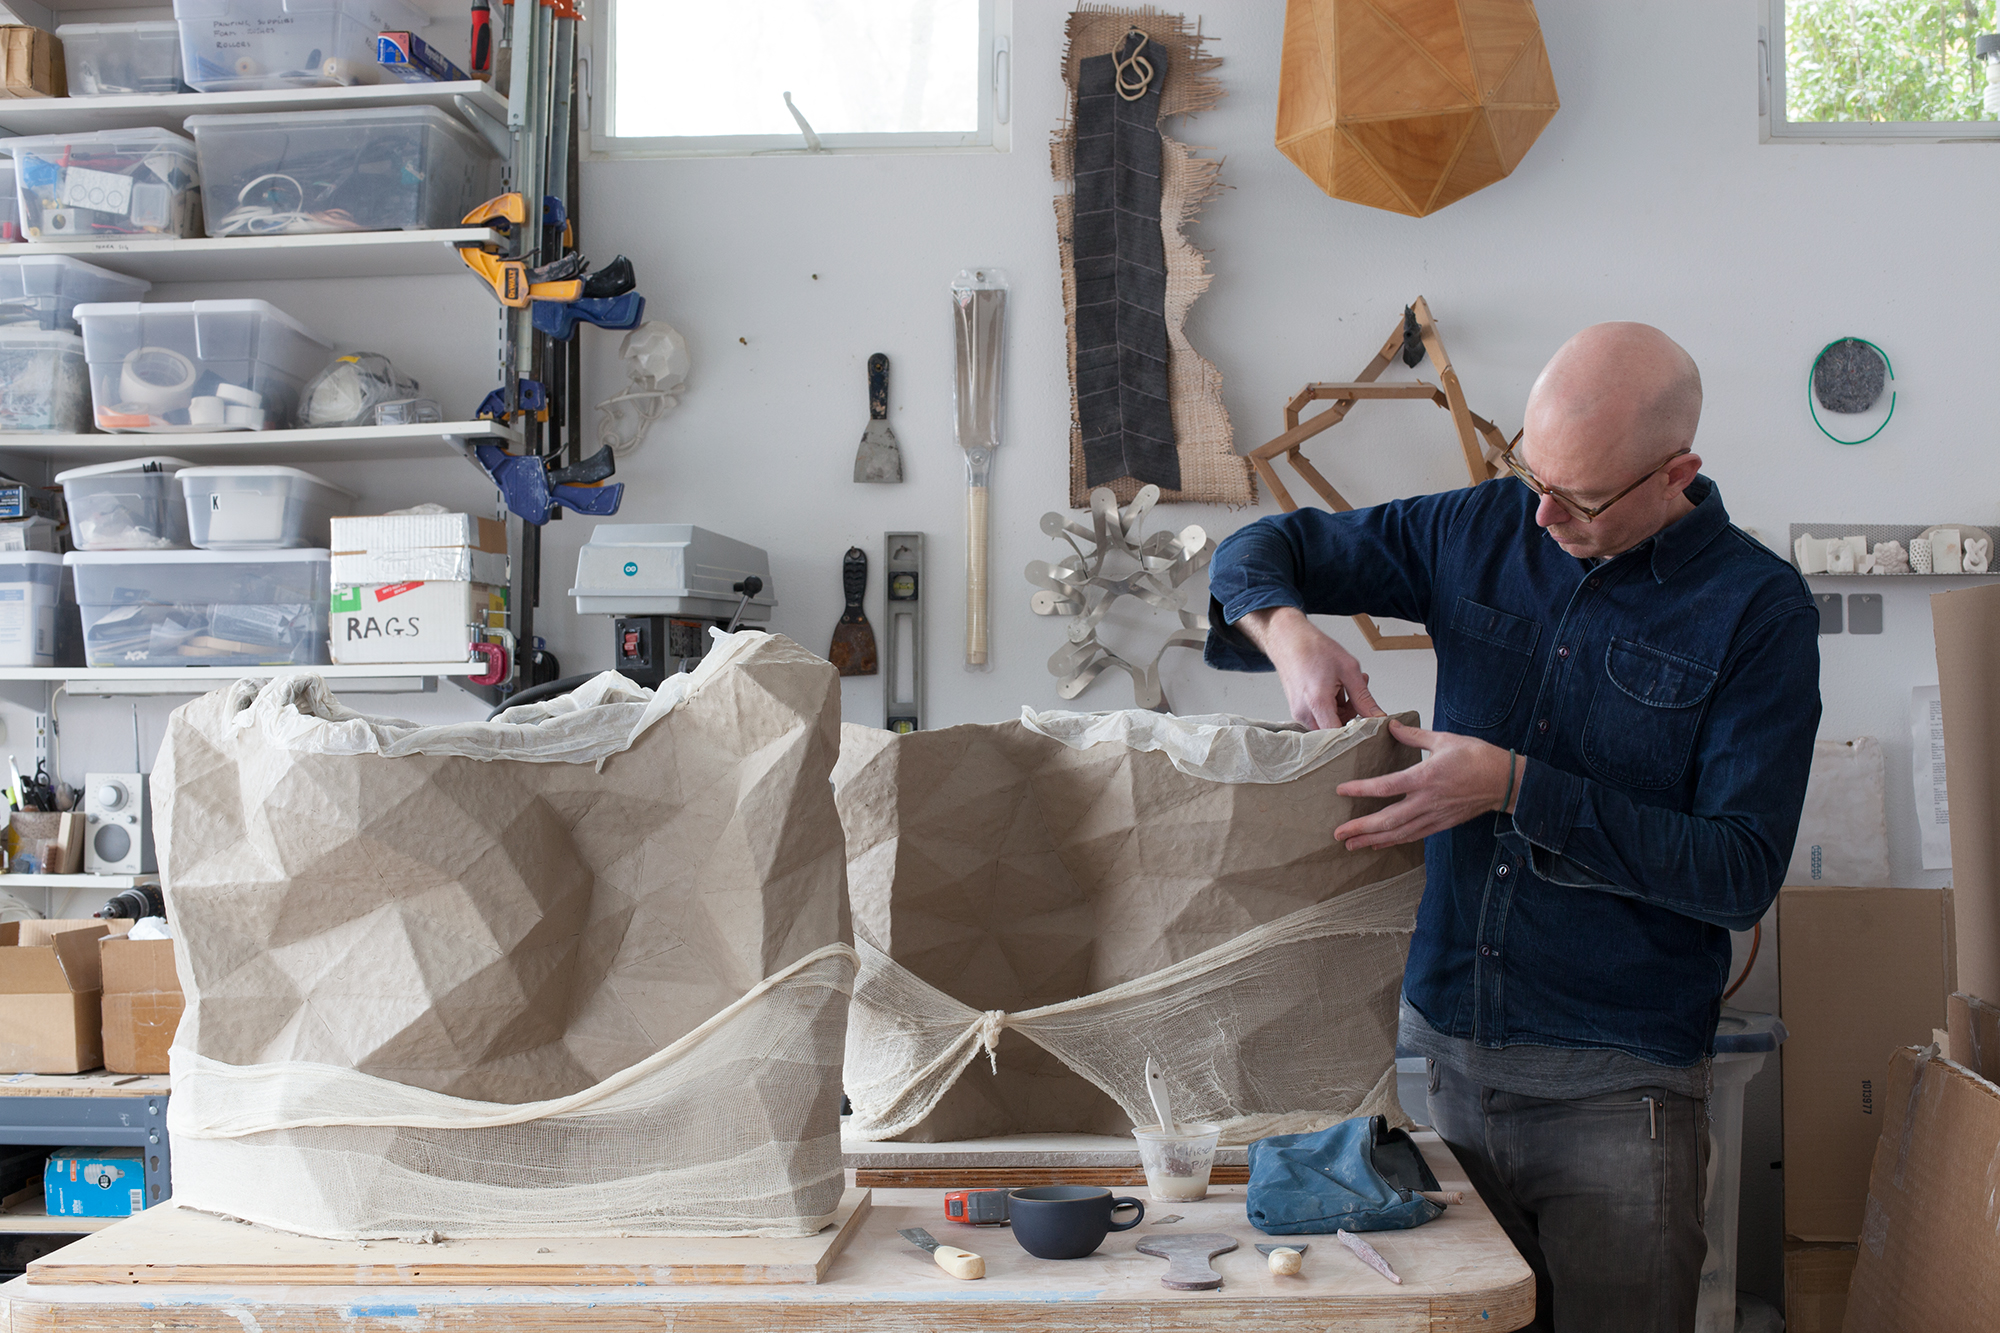 Artist Del Harrow working in his studio on hand-built clay vessels which borrow surface textures from digital models.